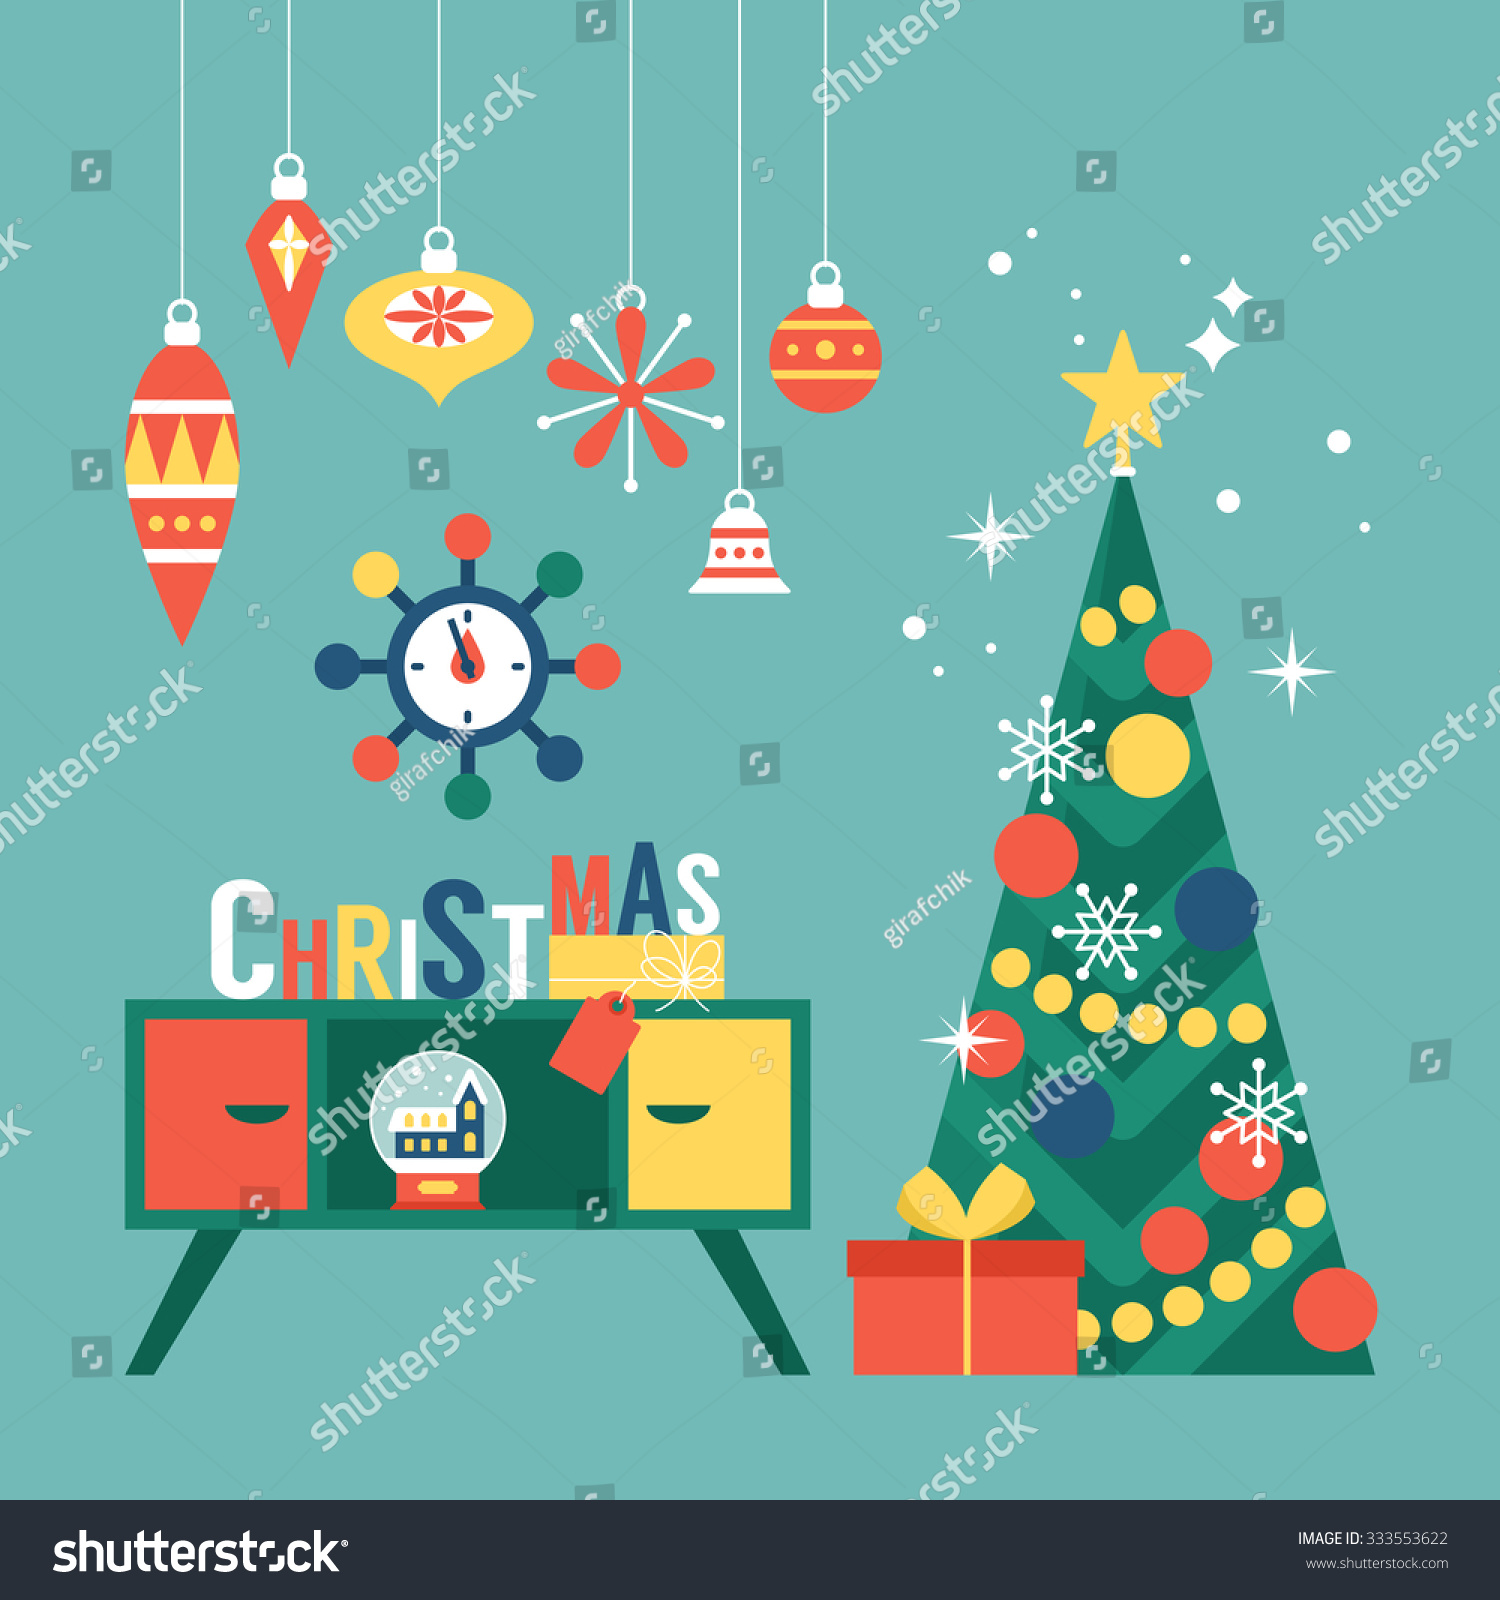 modern creative christmas greeting card design with christmas tree and mid century furniture vector illustration